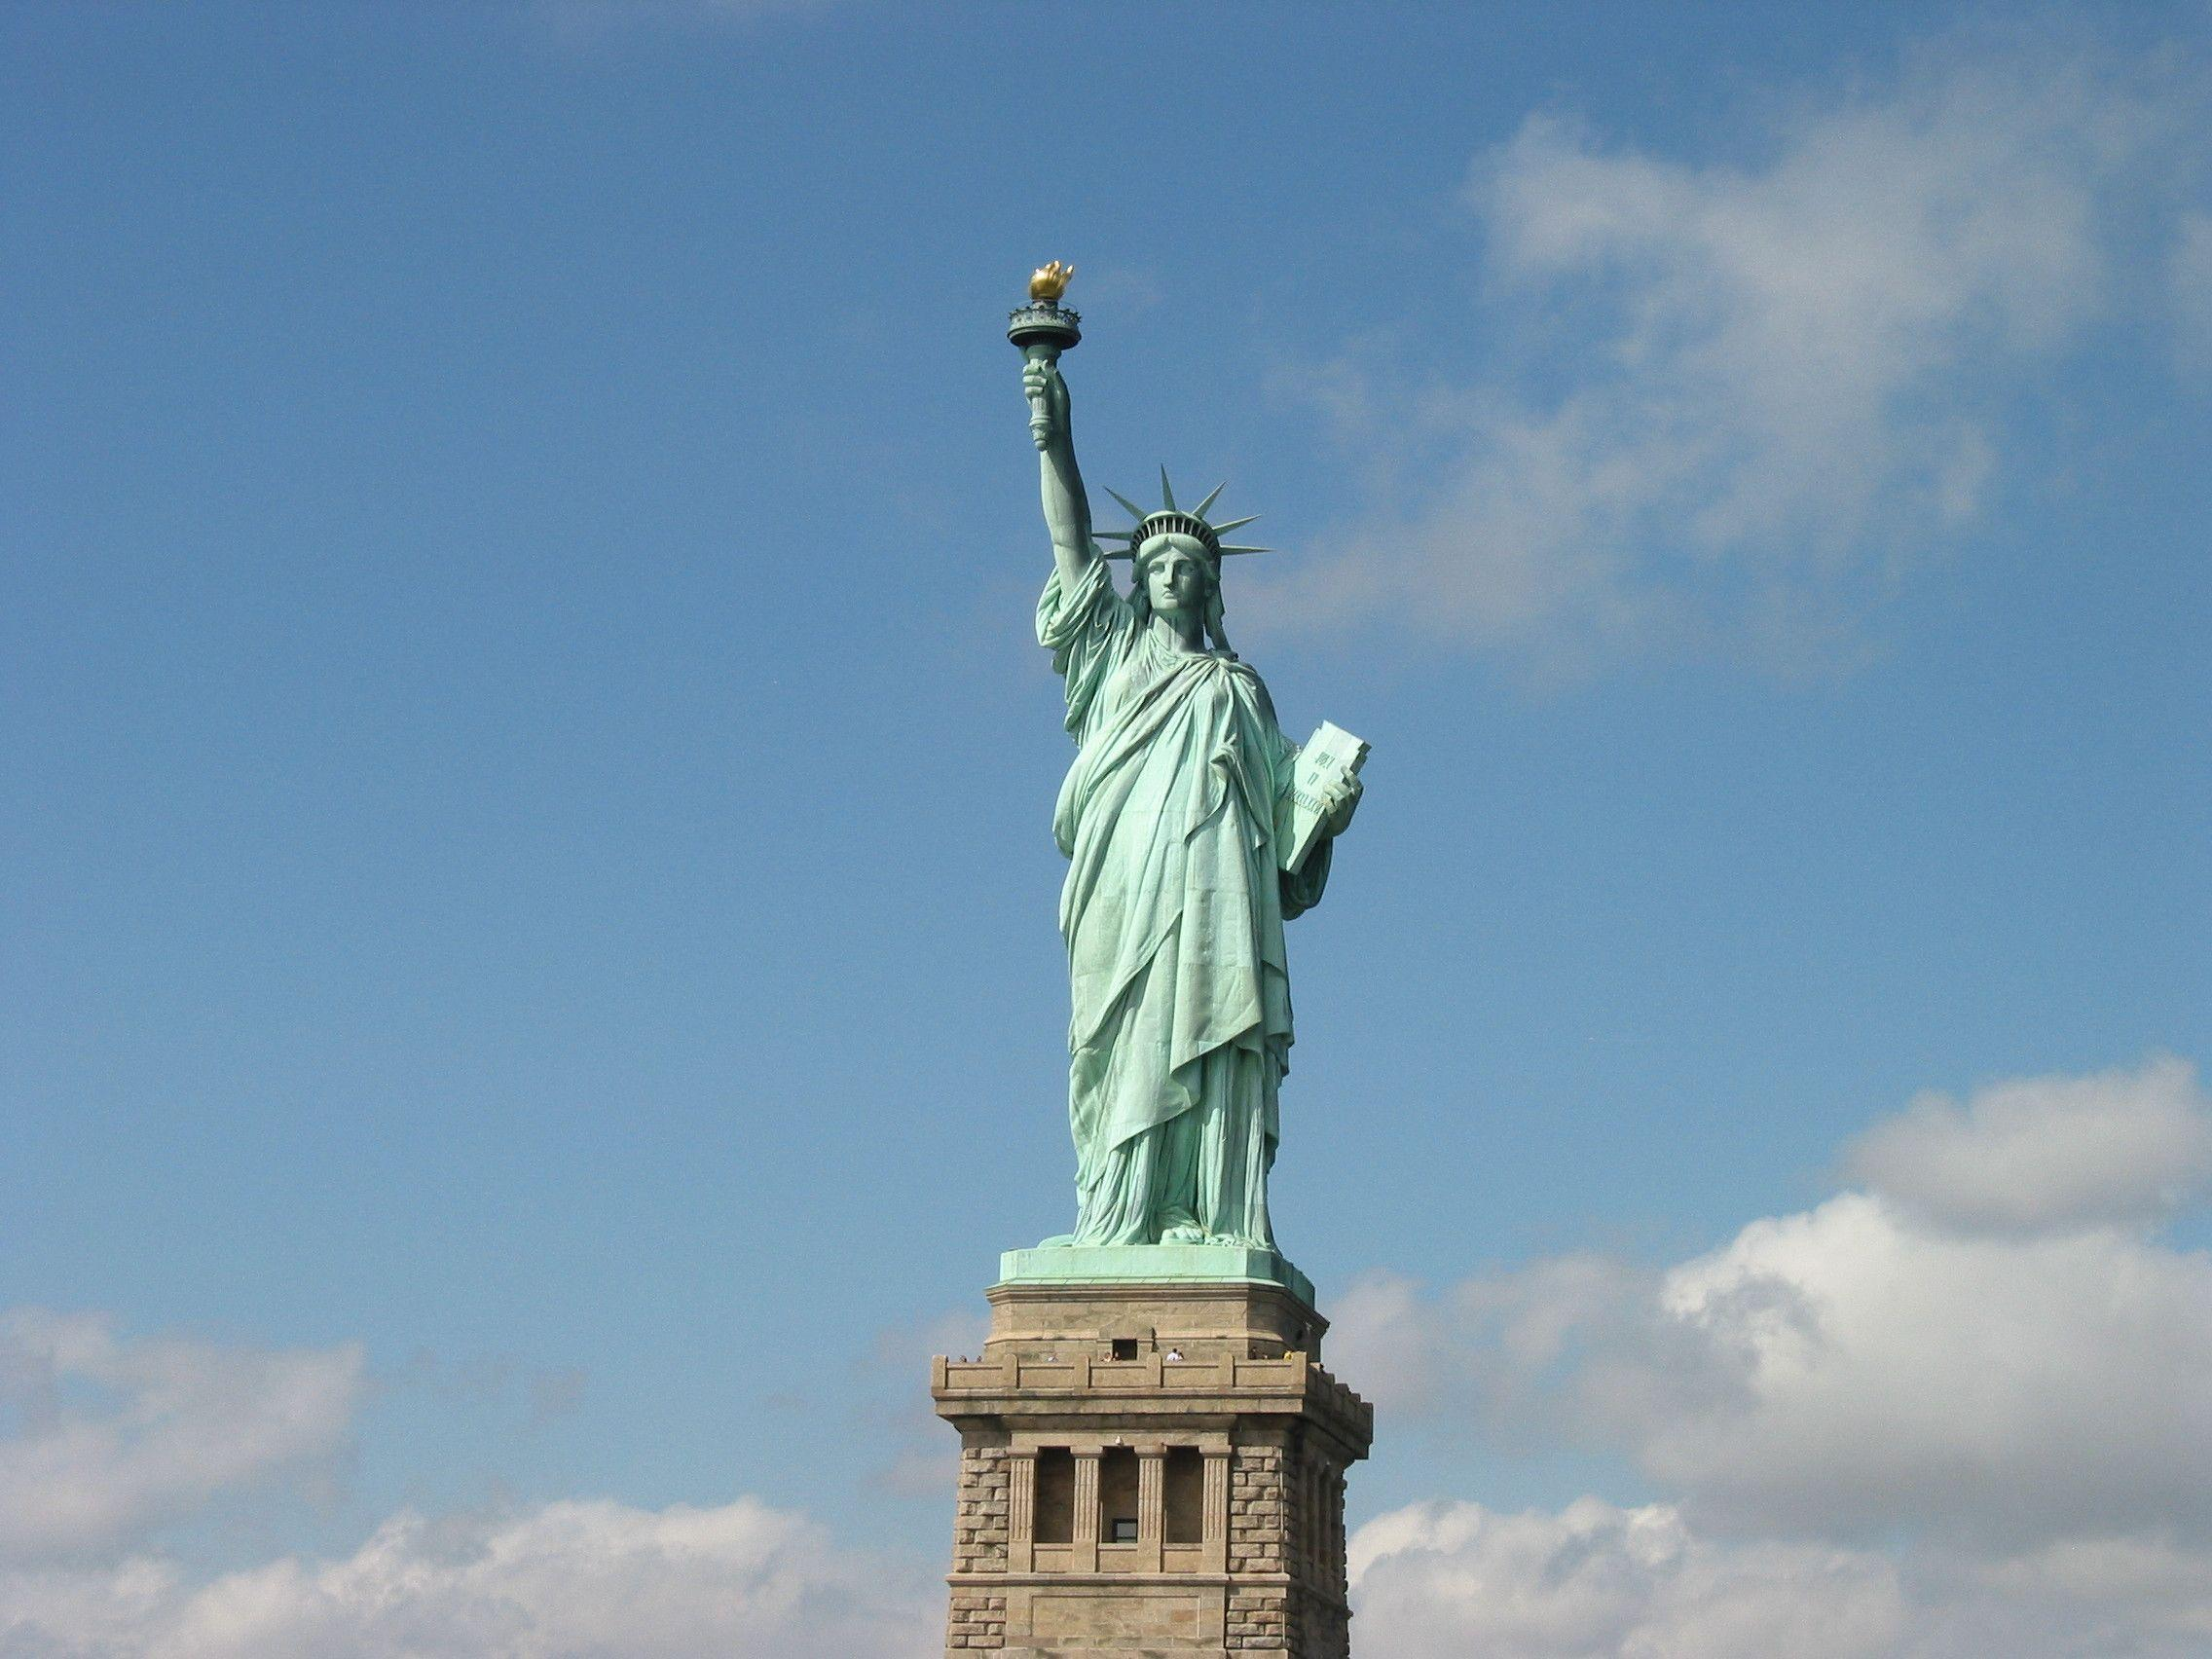 Statue of Liberty Wallpapers HD, Wallpaper, Statue of Liberty